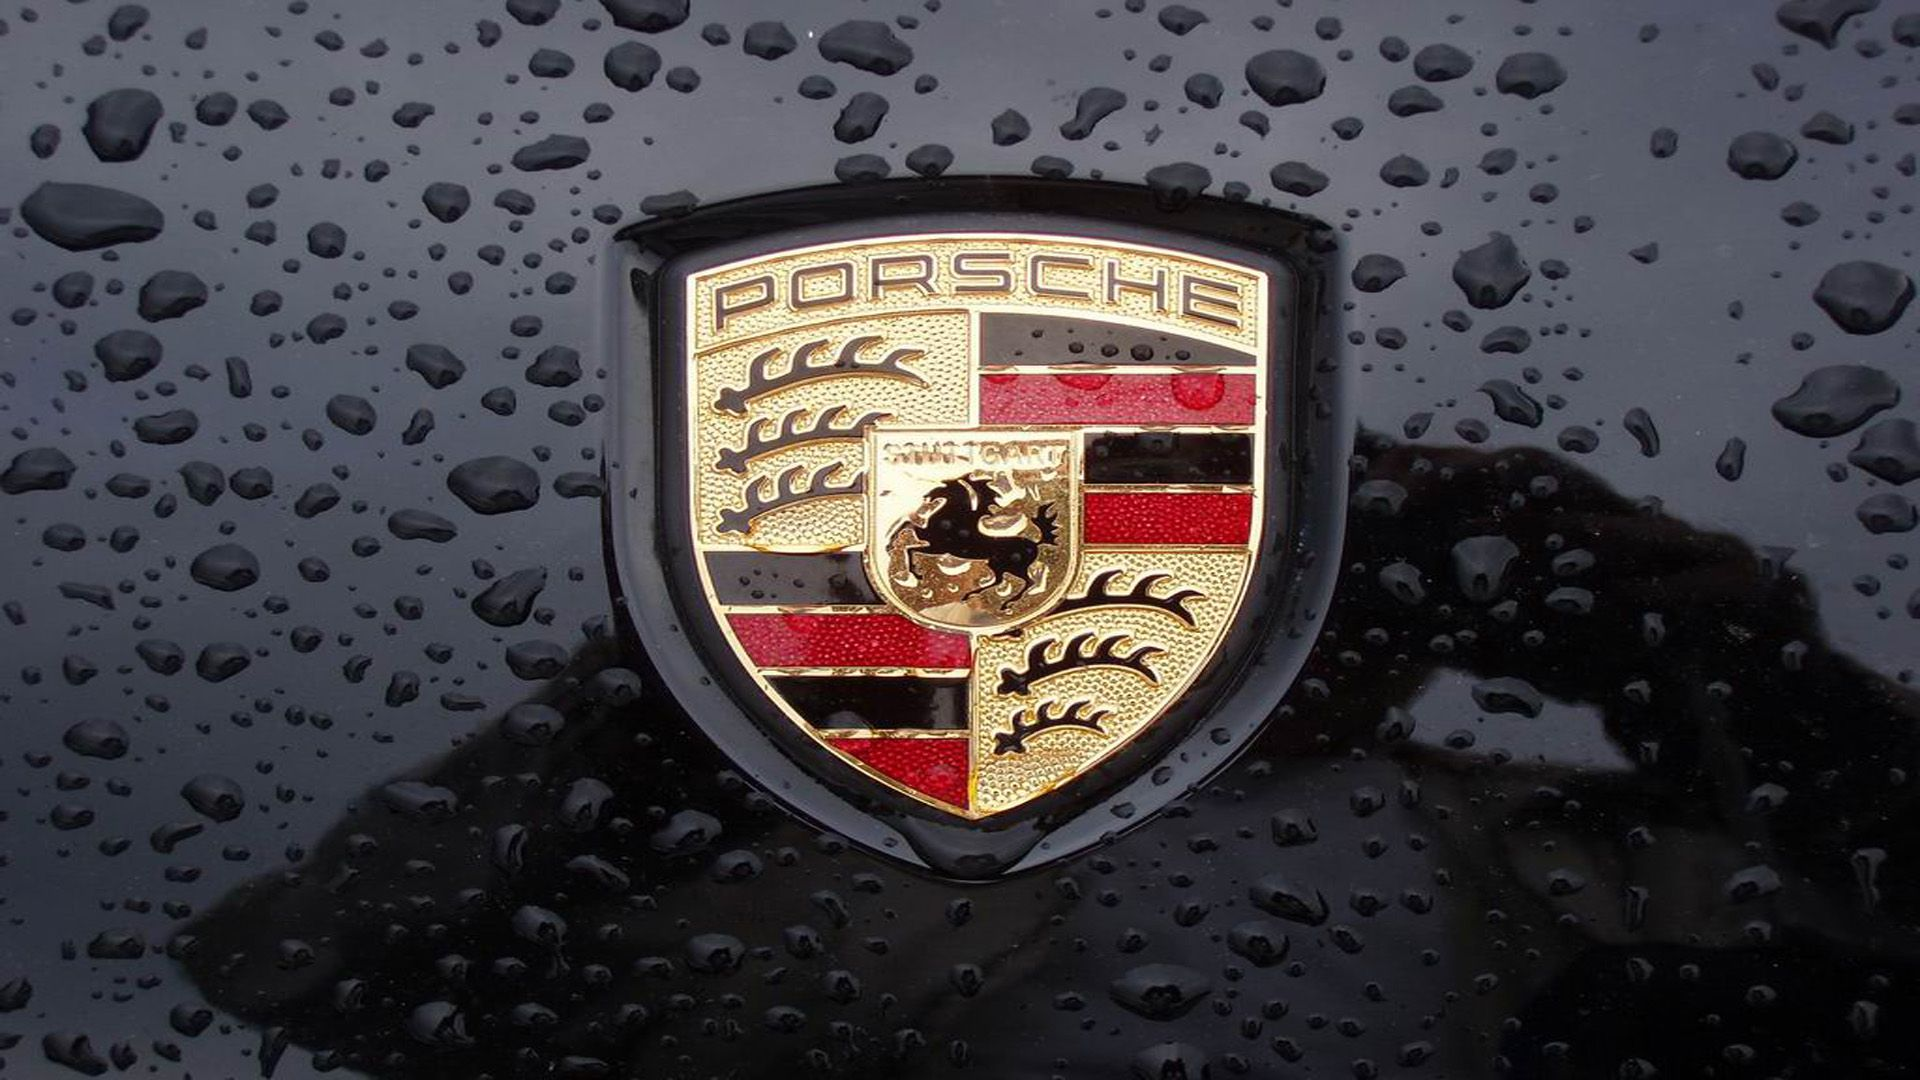 Porsche Logo Wallpapers Pictures Images Free Wallpapers - Car signs and namescar logos with wings azs cars